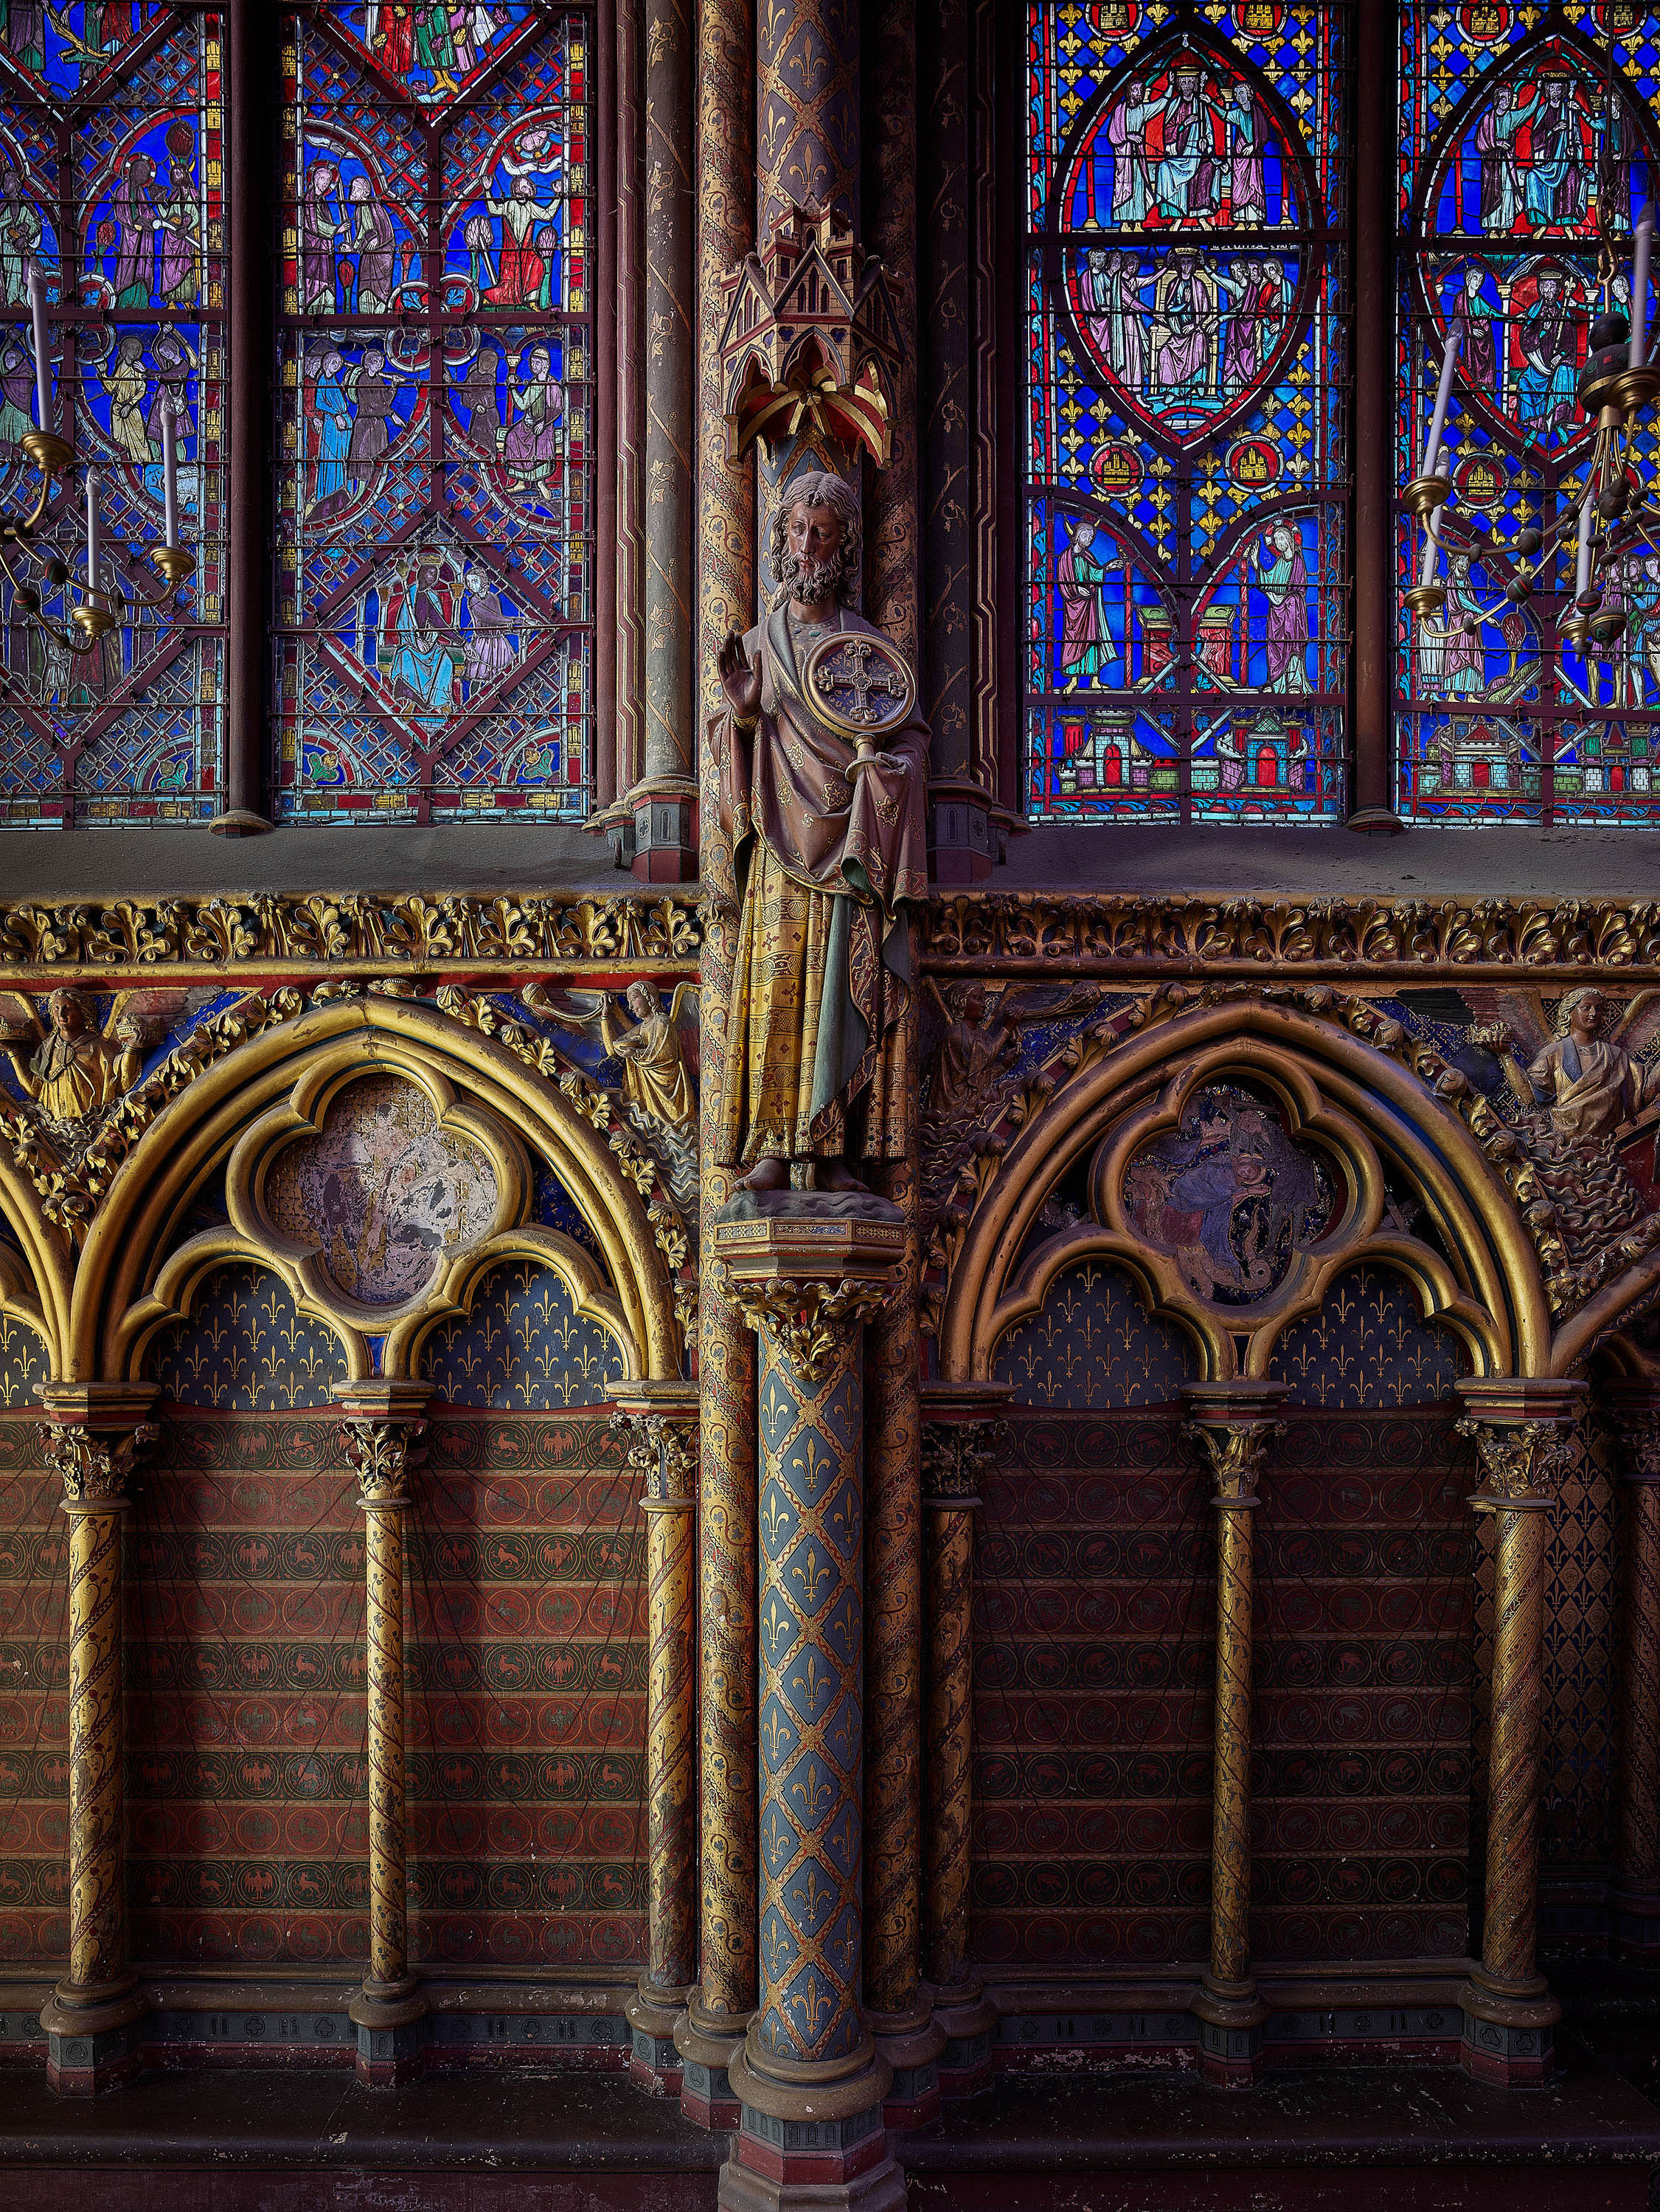 Pech Interiors of the Saint-Chapelle in Paris